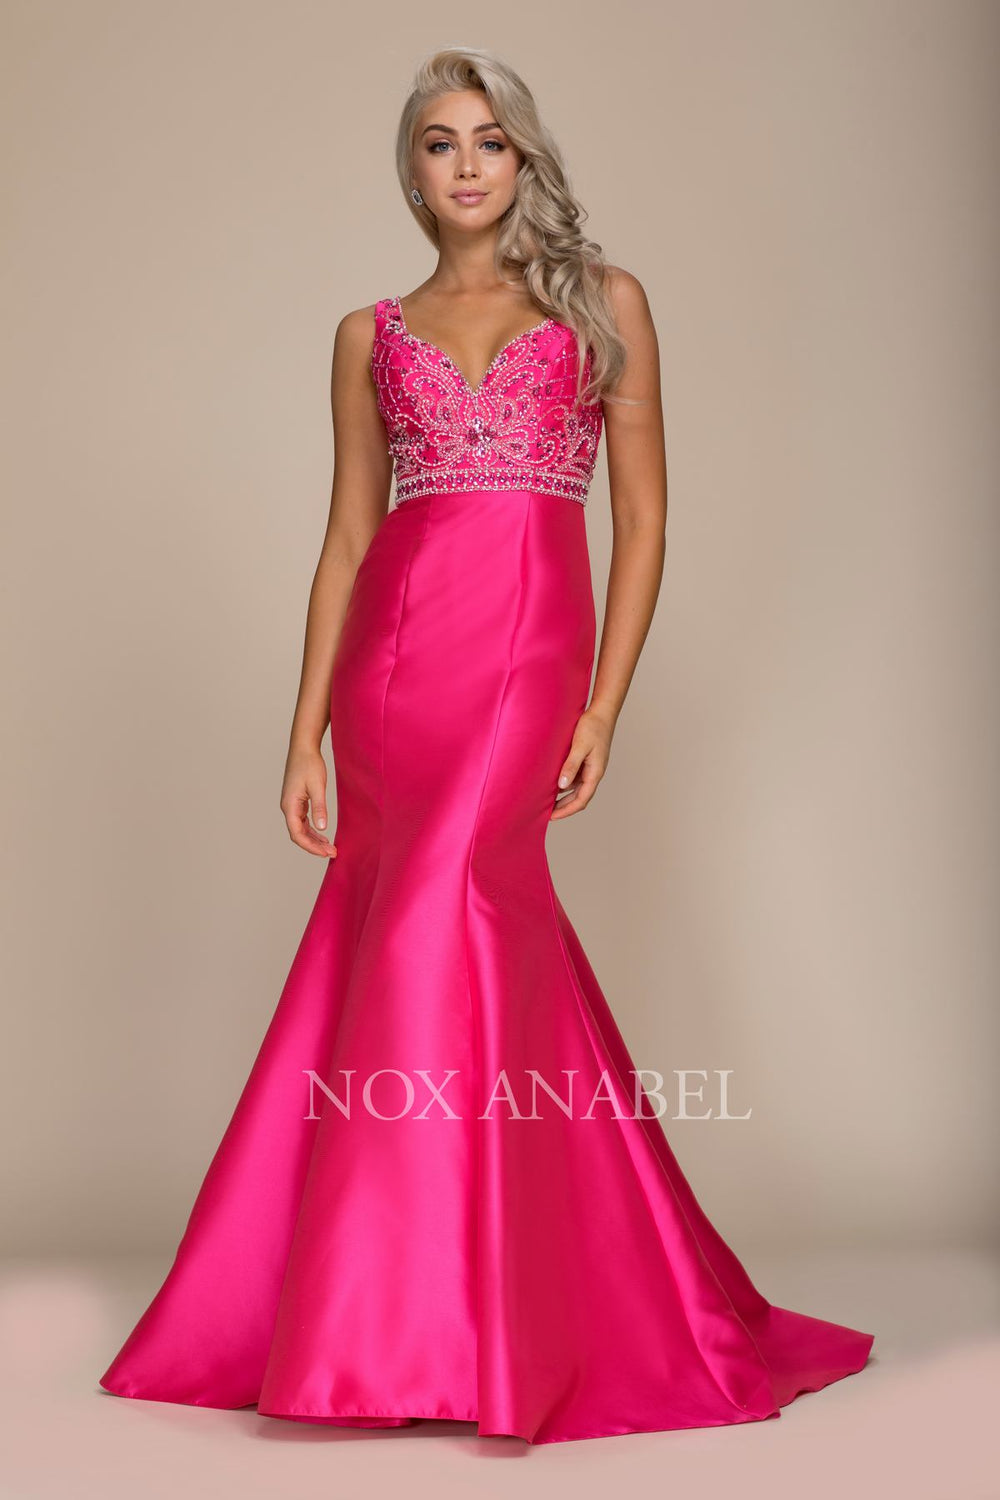 V-NECK BEADED TOP TRUMPET LONG MERMAID GOWN 8307 BY NARIANNA